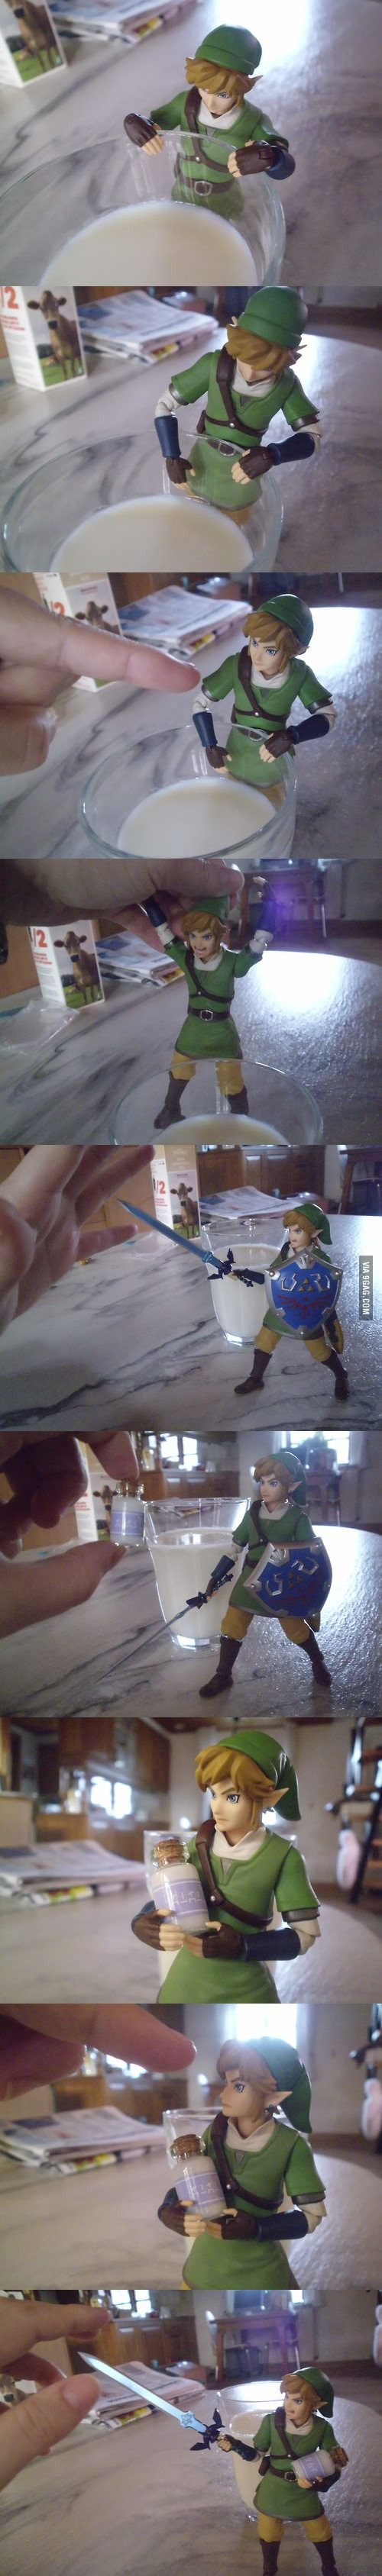 Figma Link milk stories (I'm sorry but this cracks me up XD)  where can i get a little link like that!!